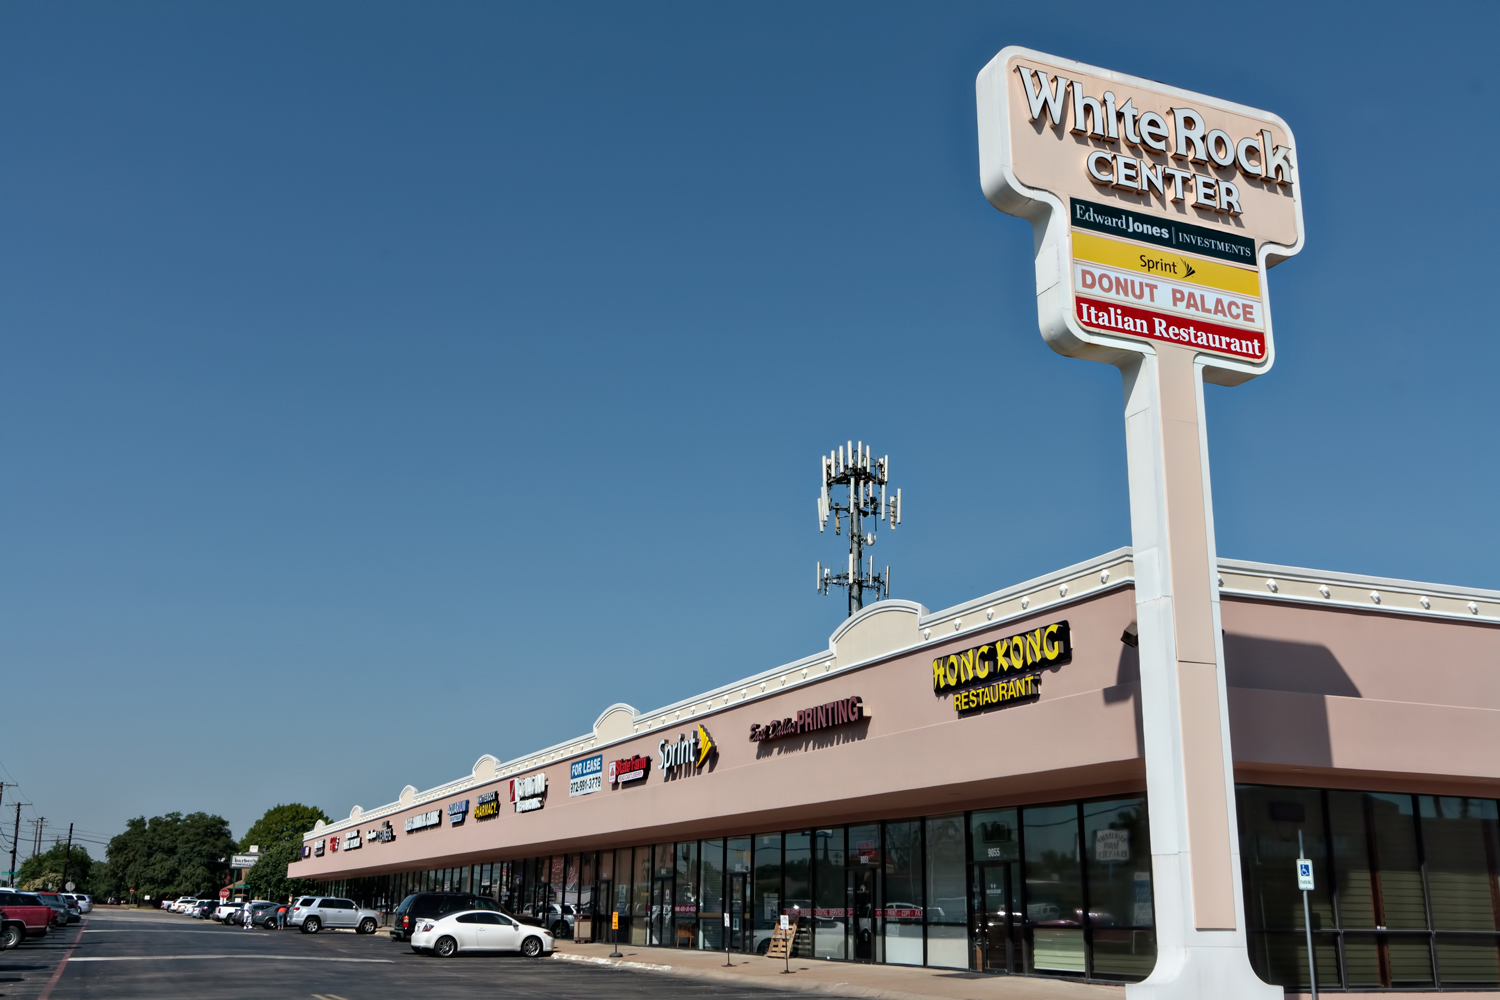 White Rock Shopping Center Garland TX